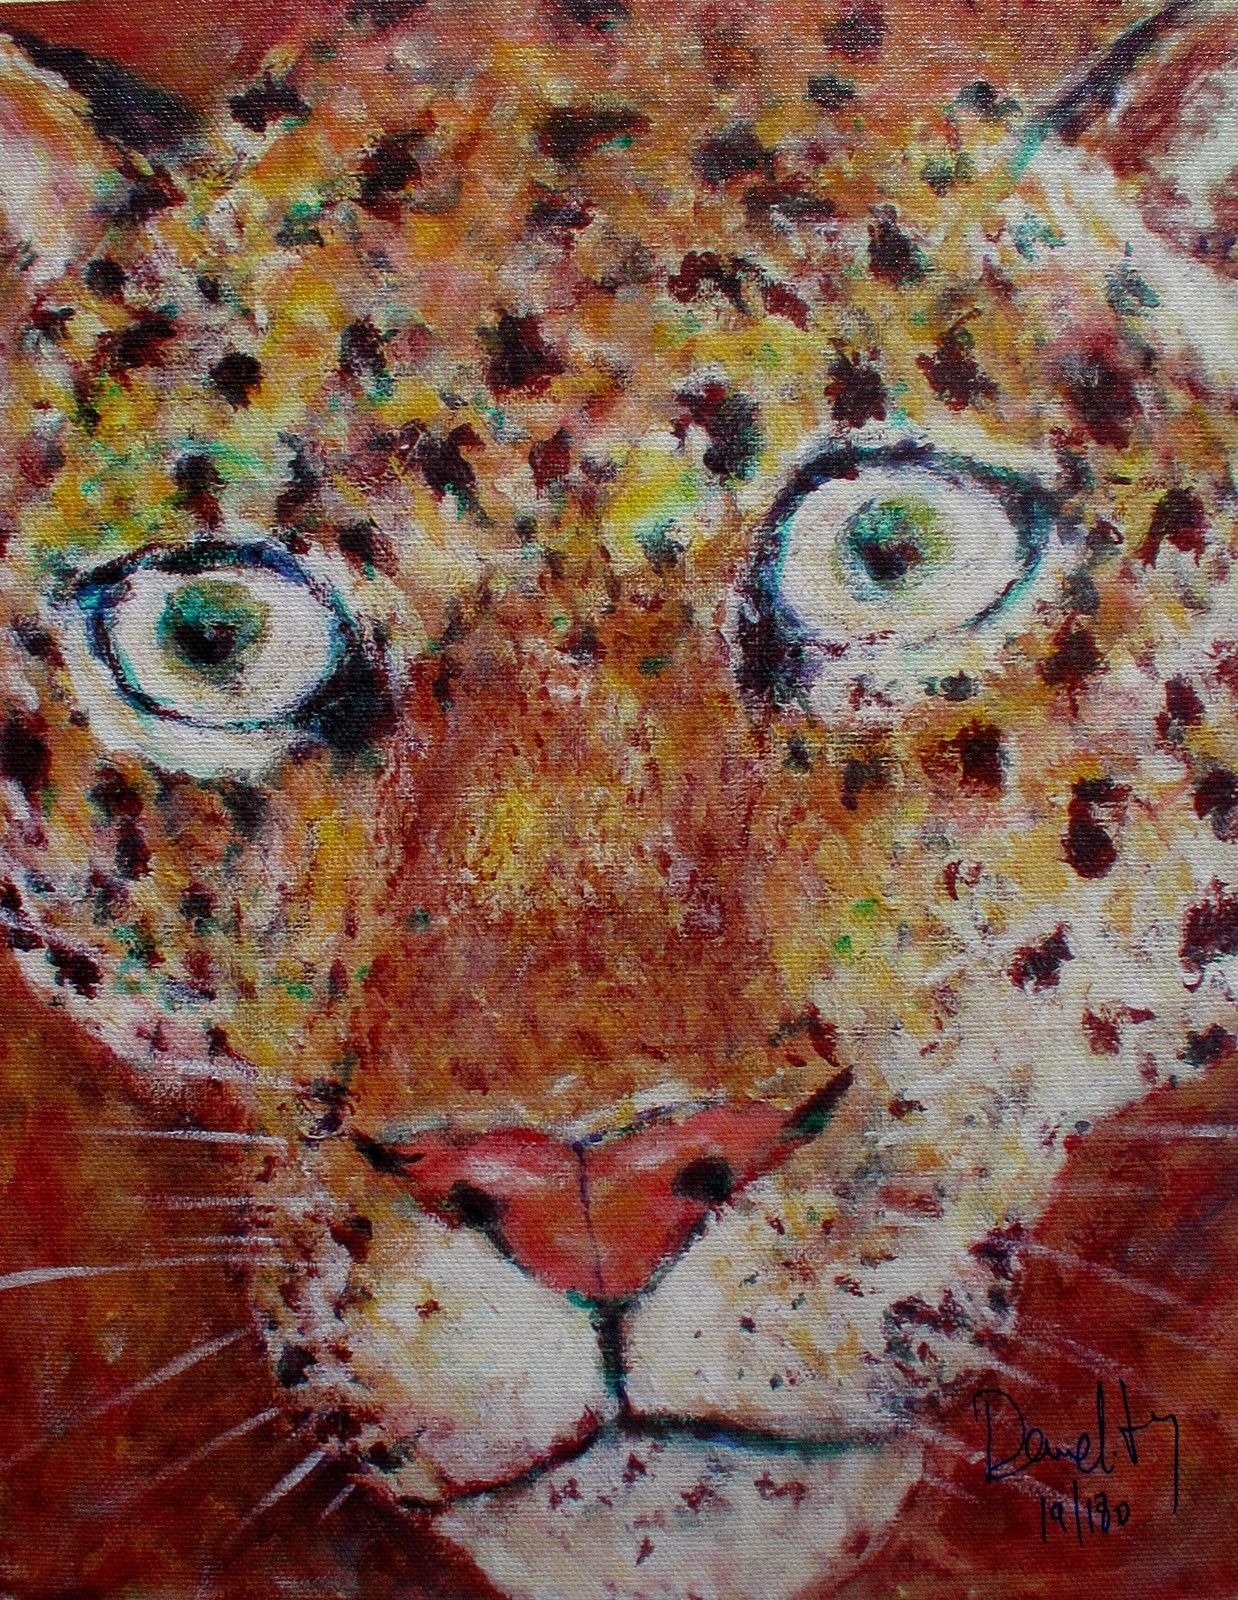 Jacques Demelitz LEOPARD Hand Signed Limited Edition Giclee on Canvas